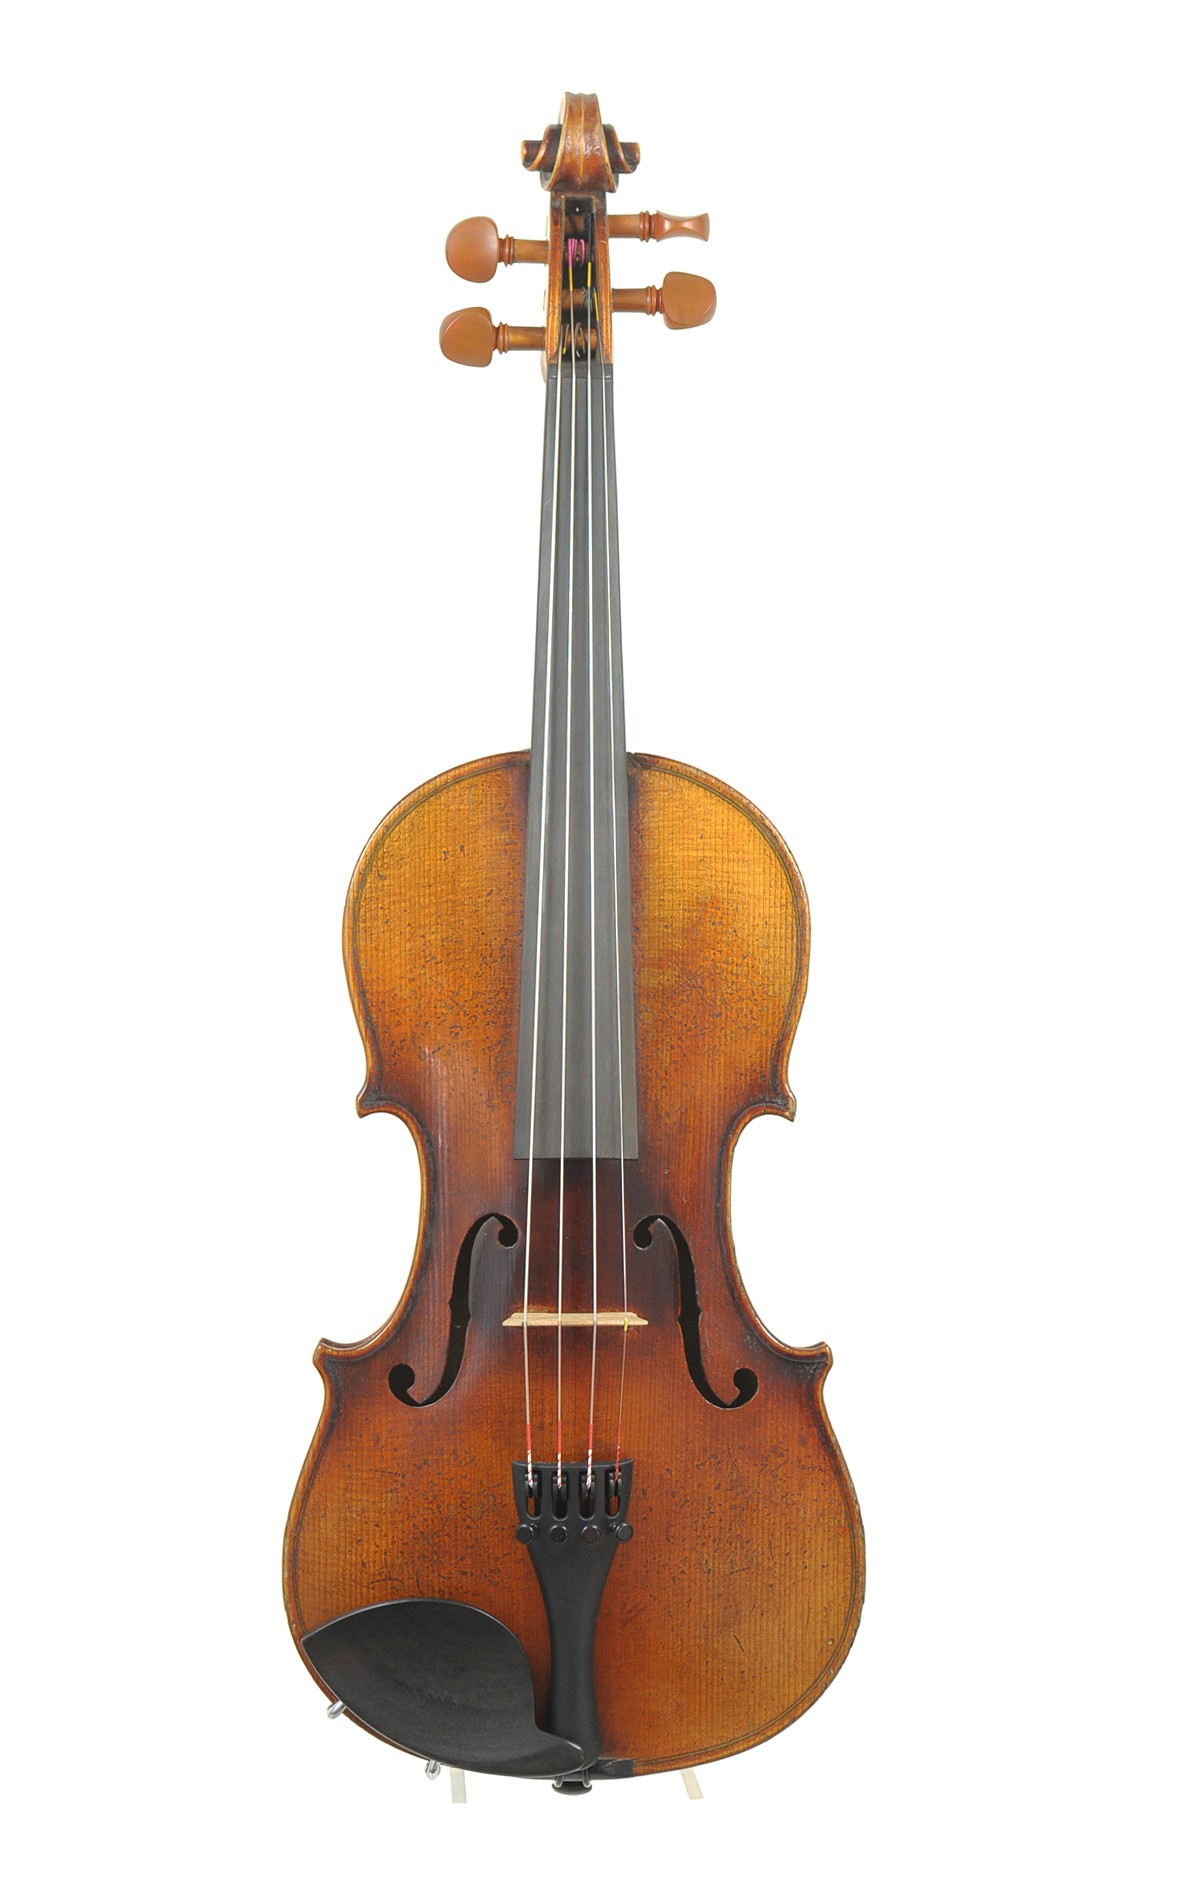 German 3/4 violin, Markneukirchen, approx. 1930 - top view